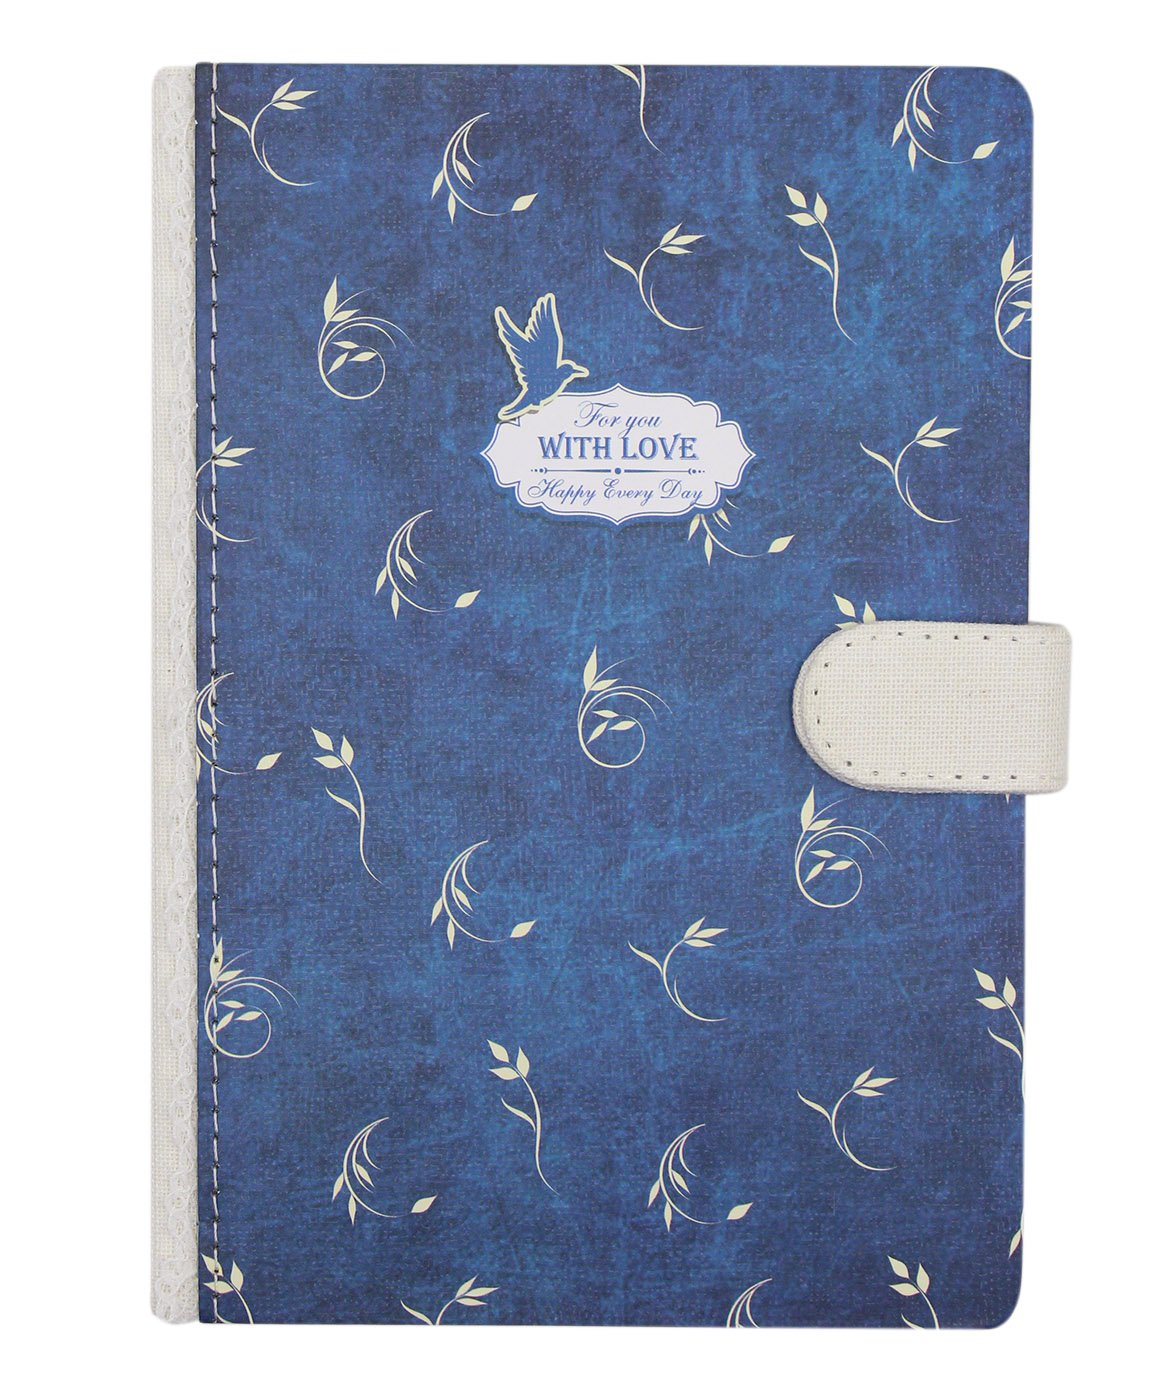 Aimeio Hardcover Notebook Cute Floral Thick Notepad Writing Journal Diary,Magnetic Closure,128 Sheets Lined Paper,7.3x5.0 Inches for Travel,Personal